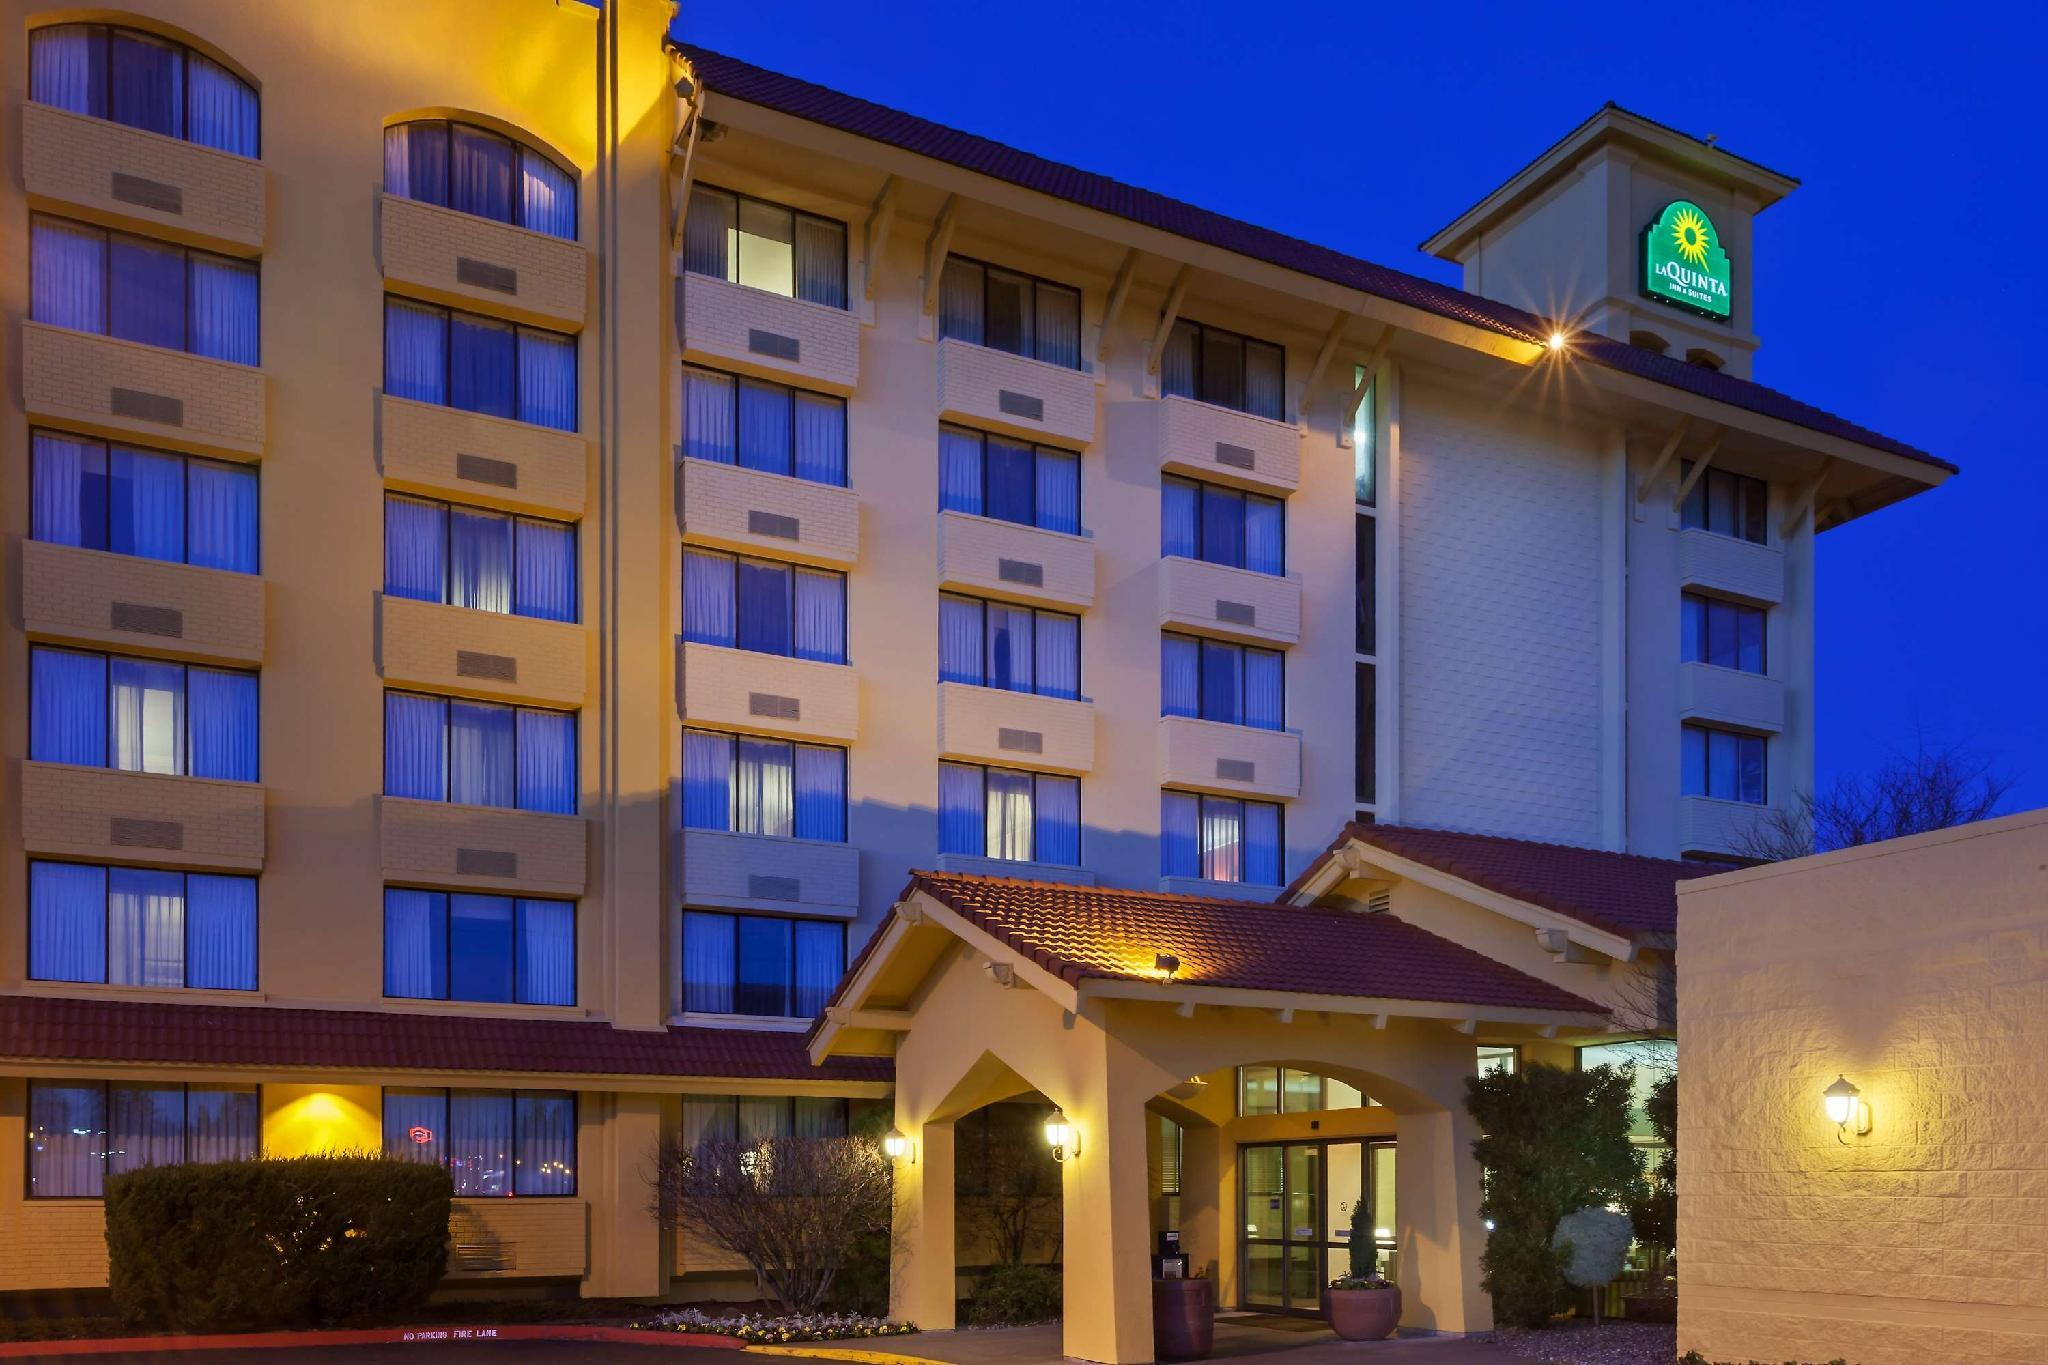 La Quinta Inn And Suites By Wyndham Seattle Sea Tac Airport